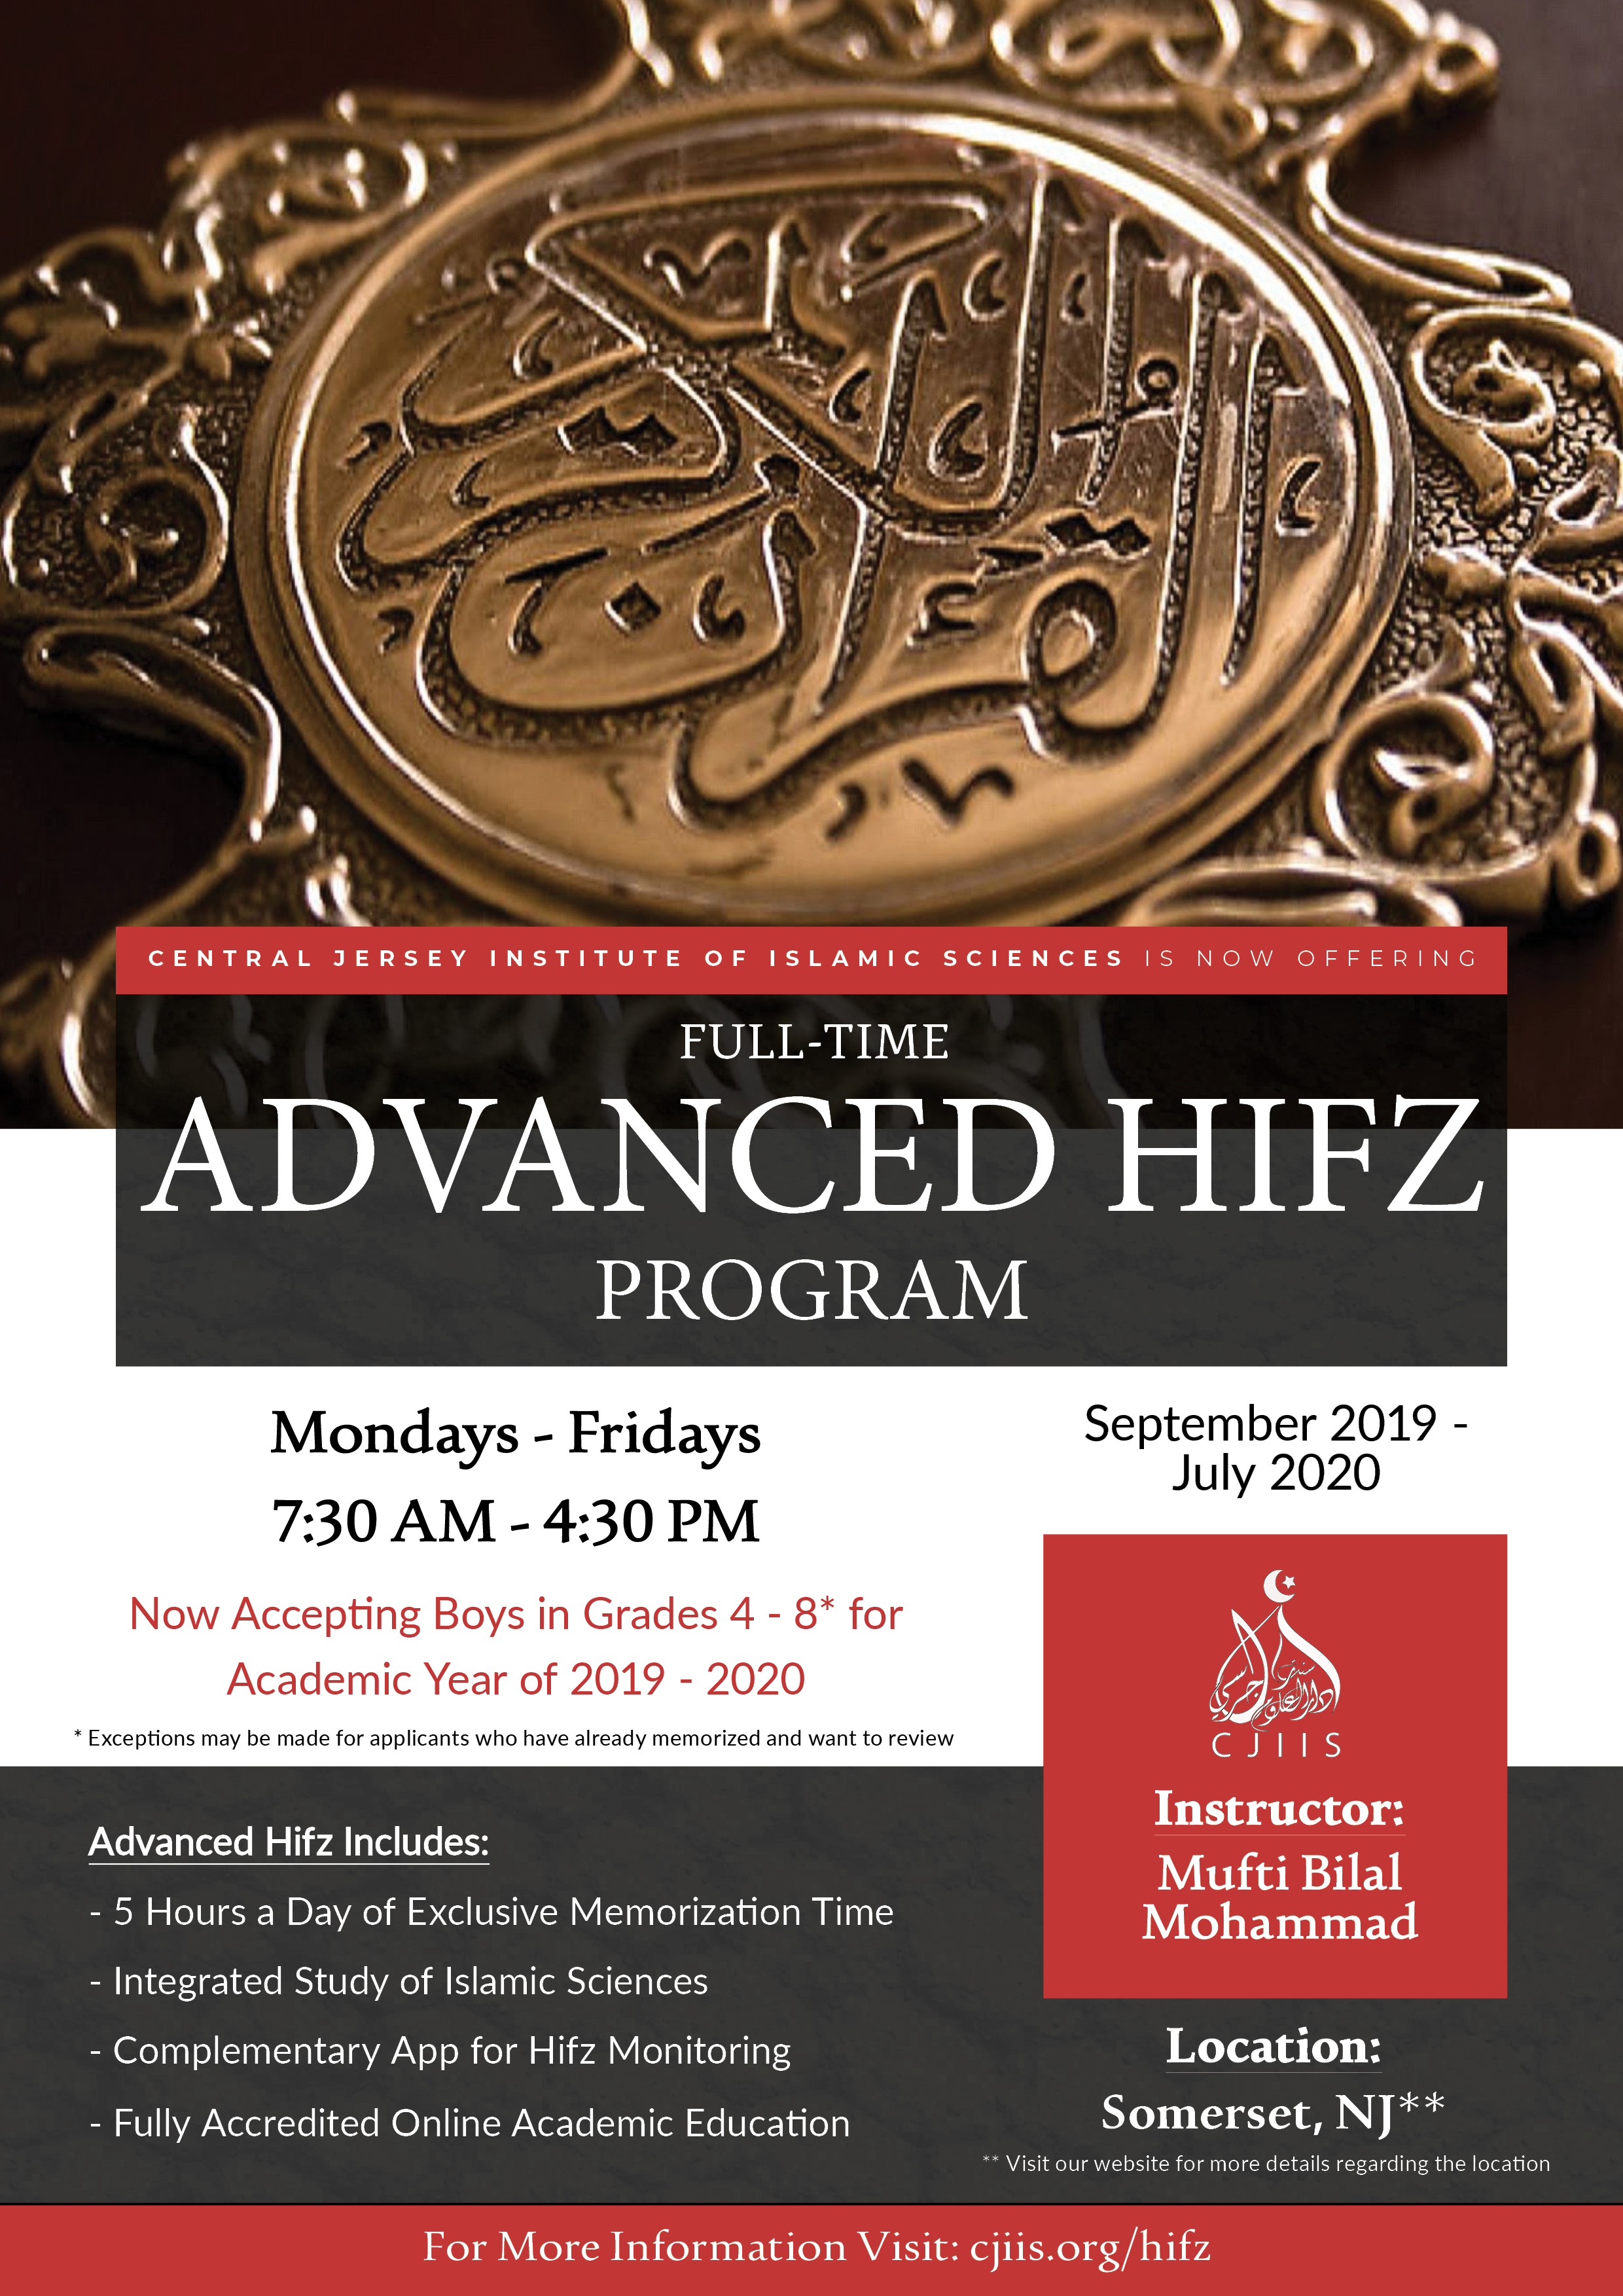 Advanced Hifz | Central Jersey Institute of Islamic Sciences